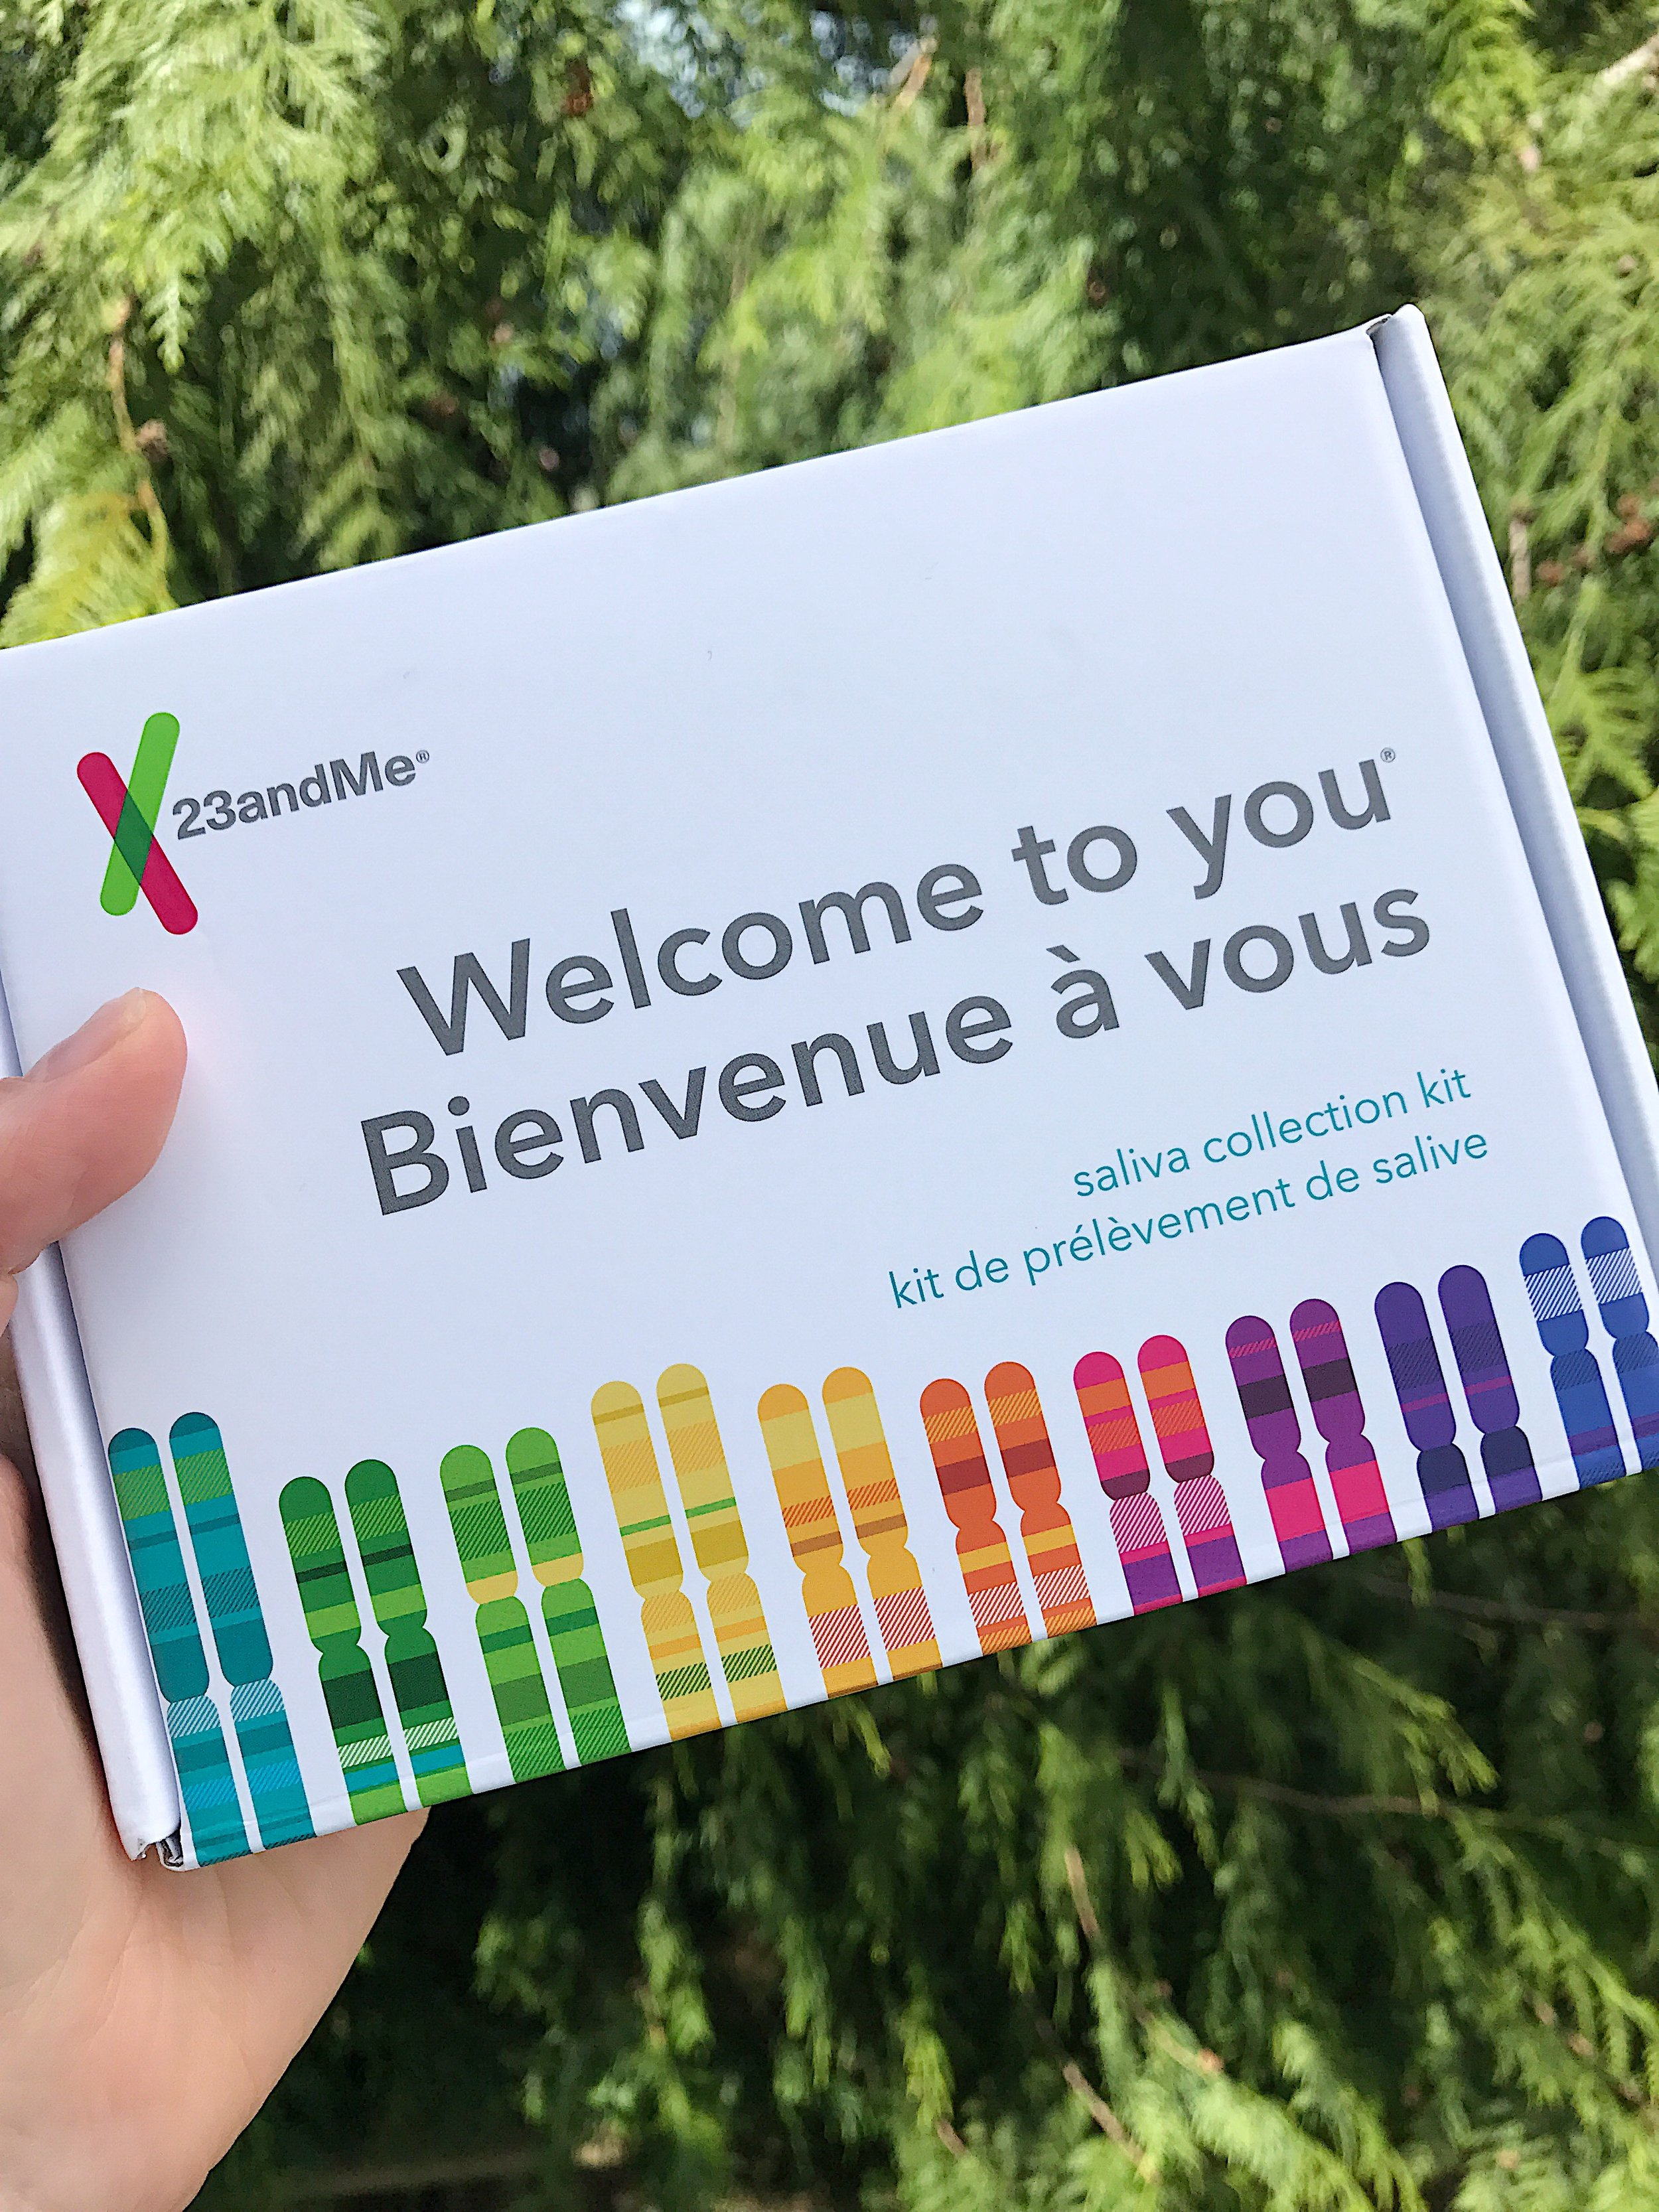 Anyone can order the test kit from 23andme.com - keep an eye out for groupons and special occasion discounts.